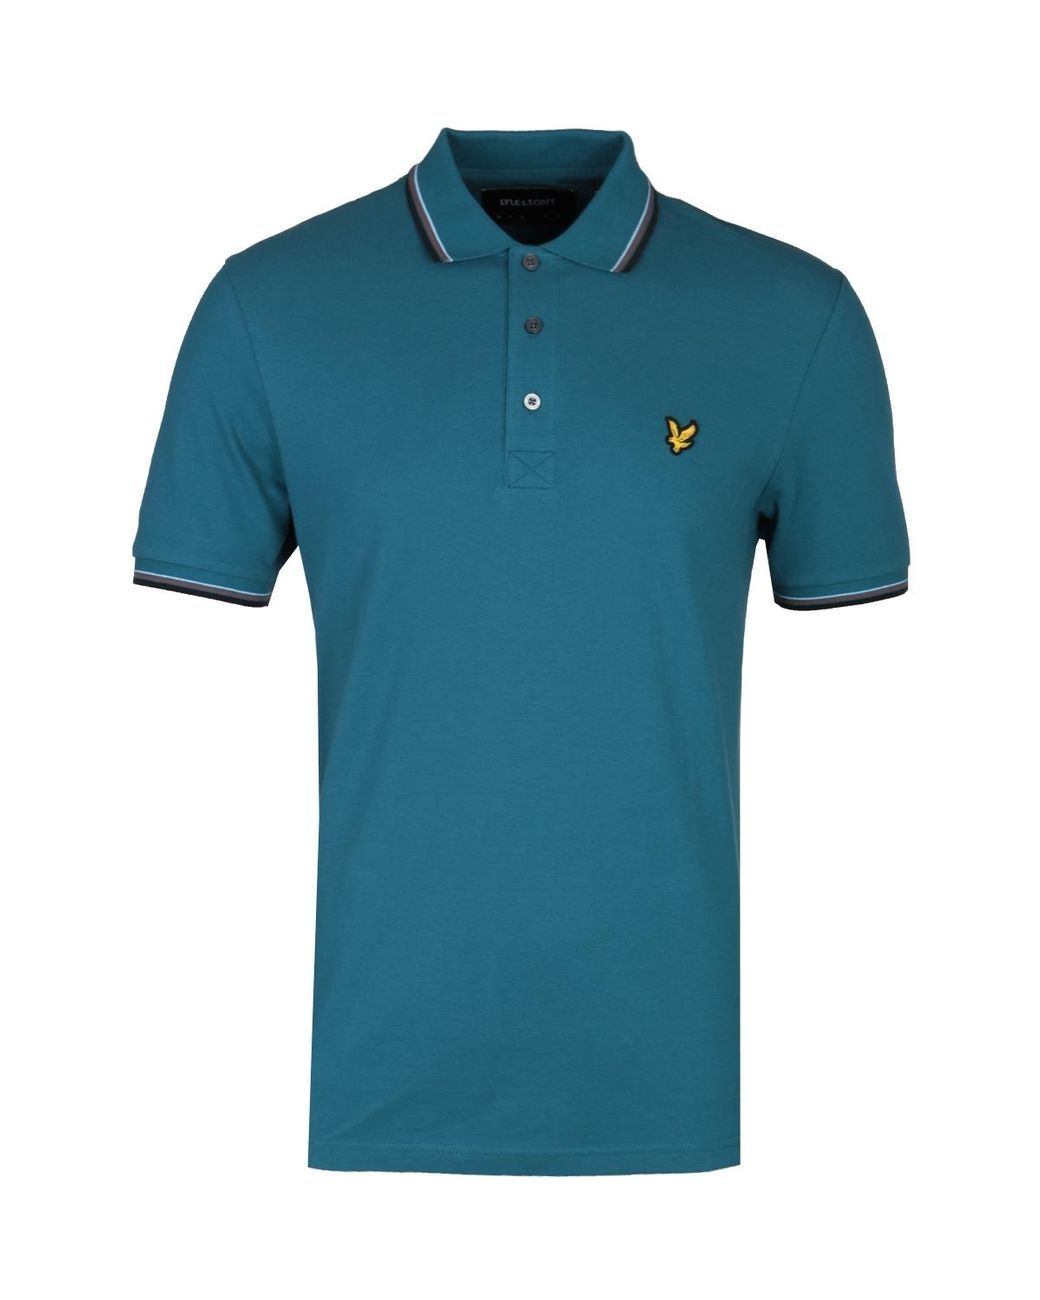 Lyle /& Scott Long Sleeve Tipped Teal Polo Shirt